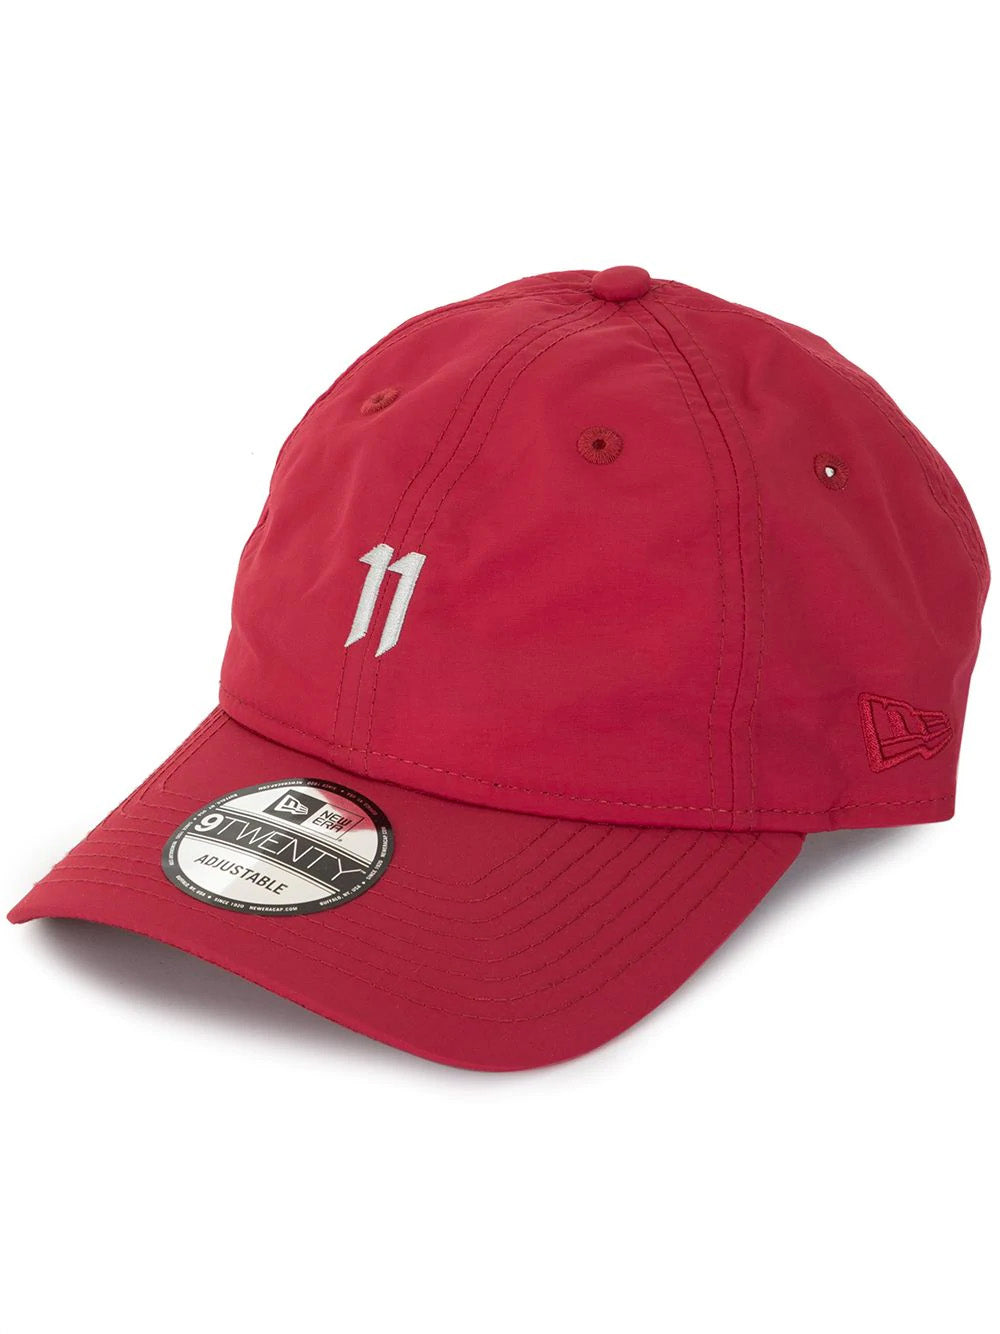 RED 11 LOGO HAT